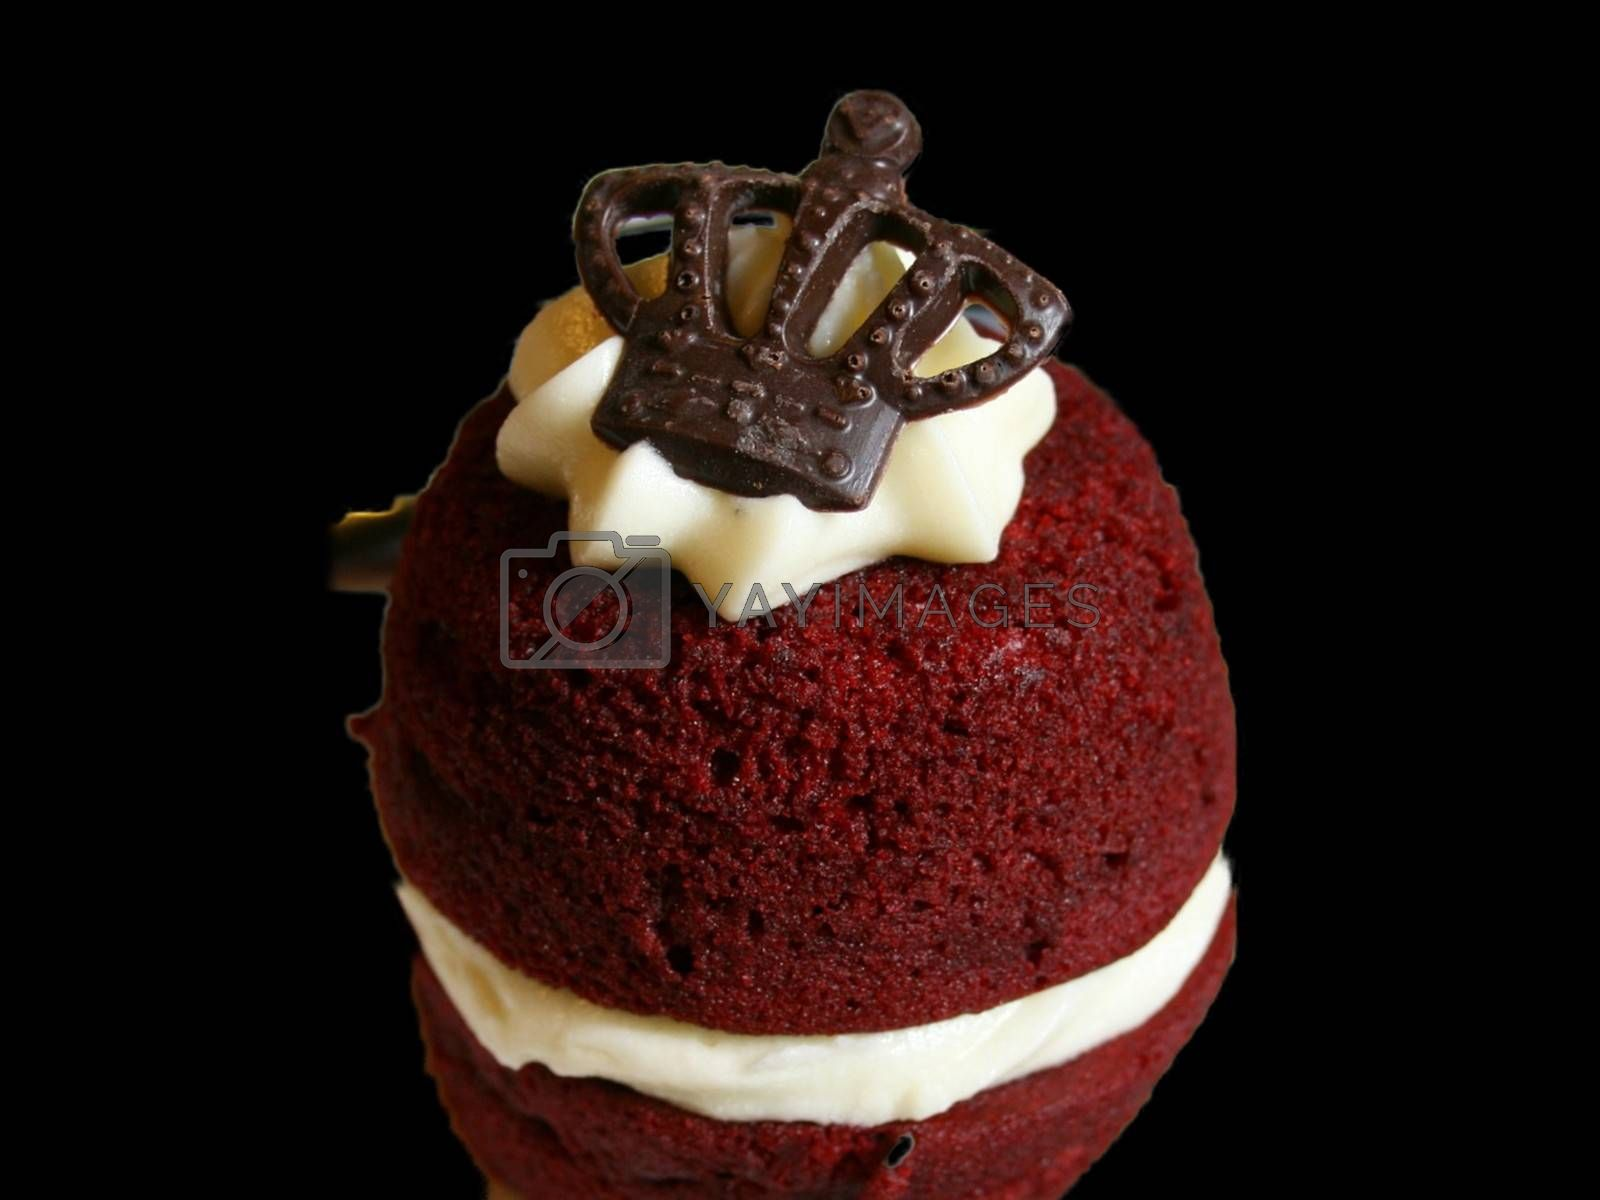 Royalty free image of Closeup of a red velvet cake topped with a chocolate crown isolated on black background by balage941